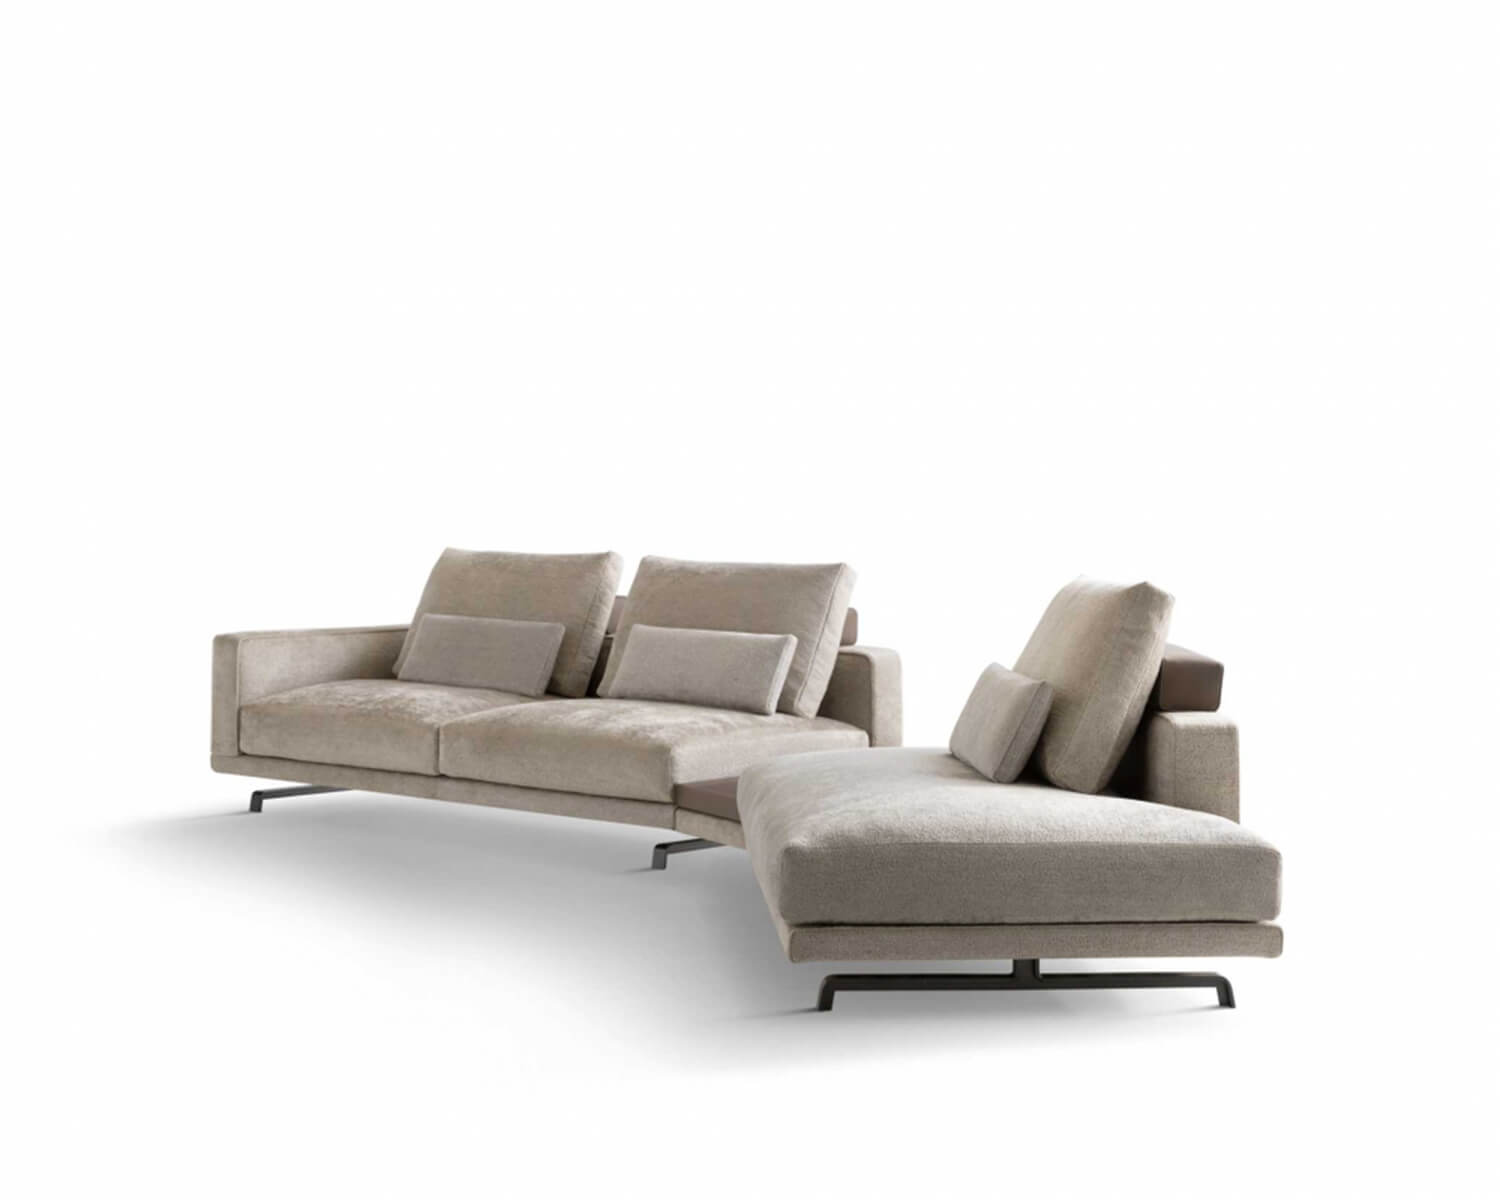 Side view of Beige Octave modular sectional on a white background